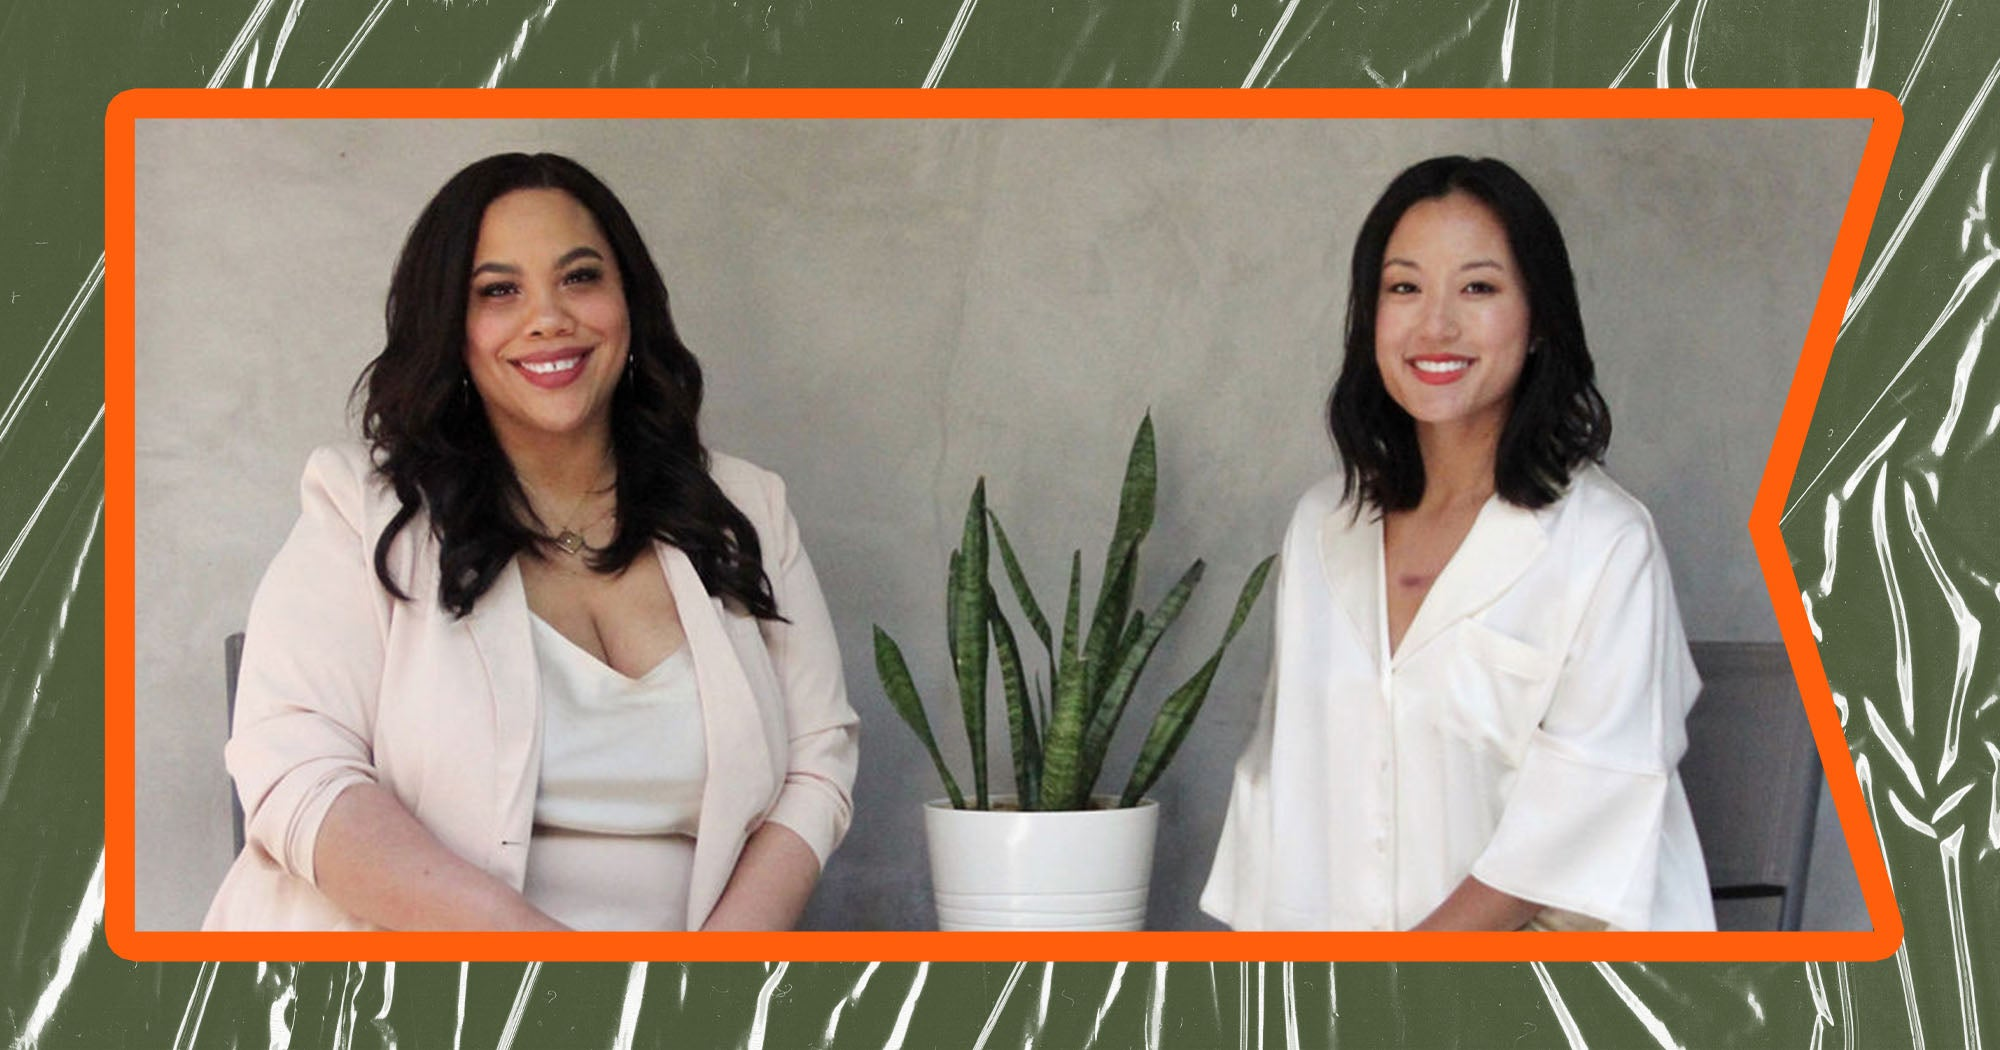 How To Turn Your Imposter Syndrome Into An Advantage, According To 2 Beauty-Industry Vets